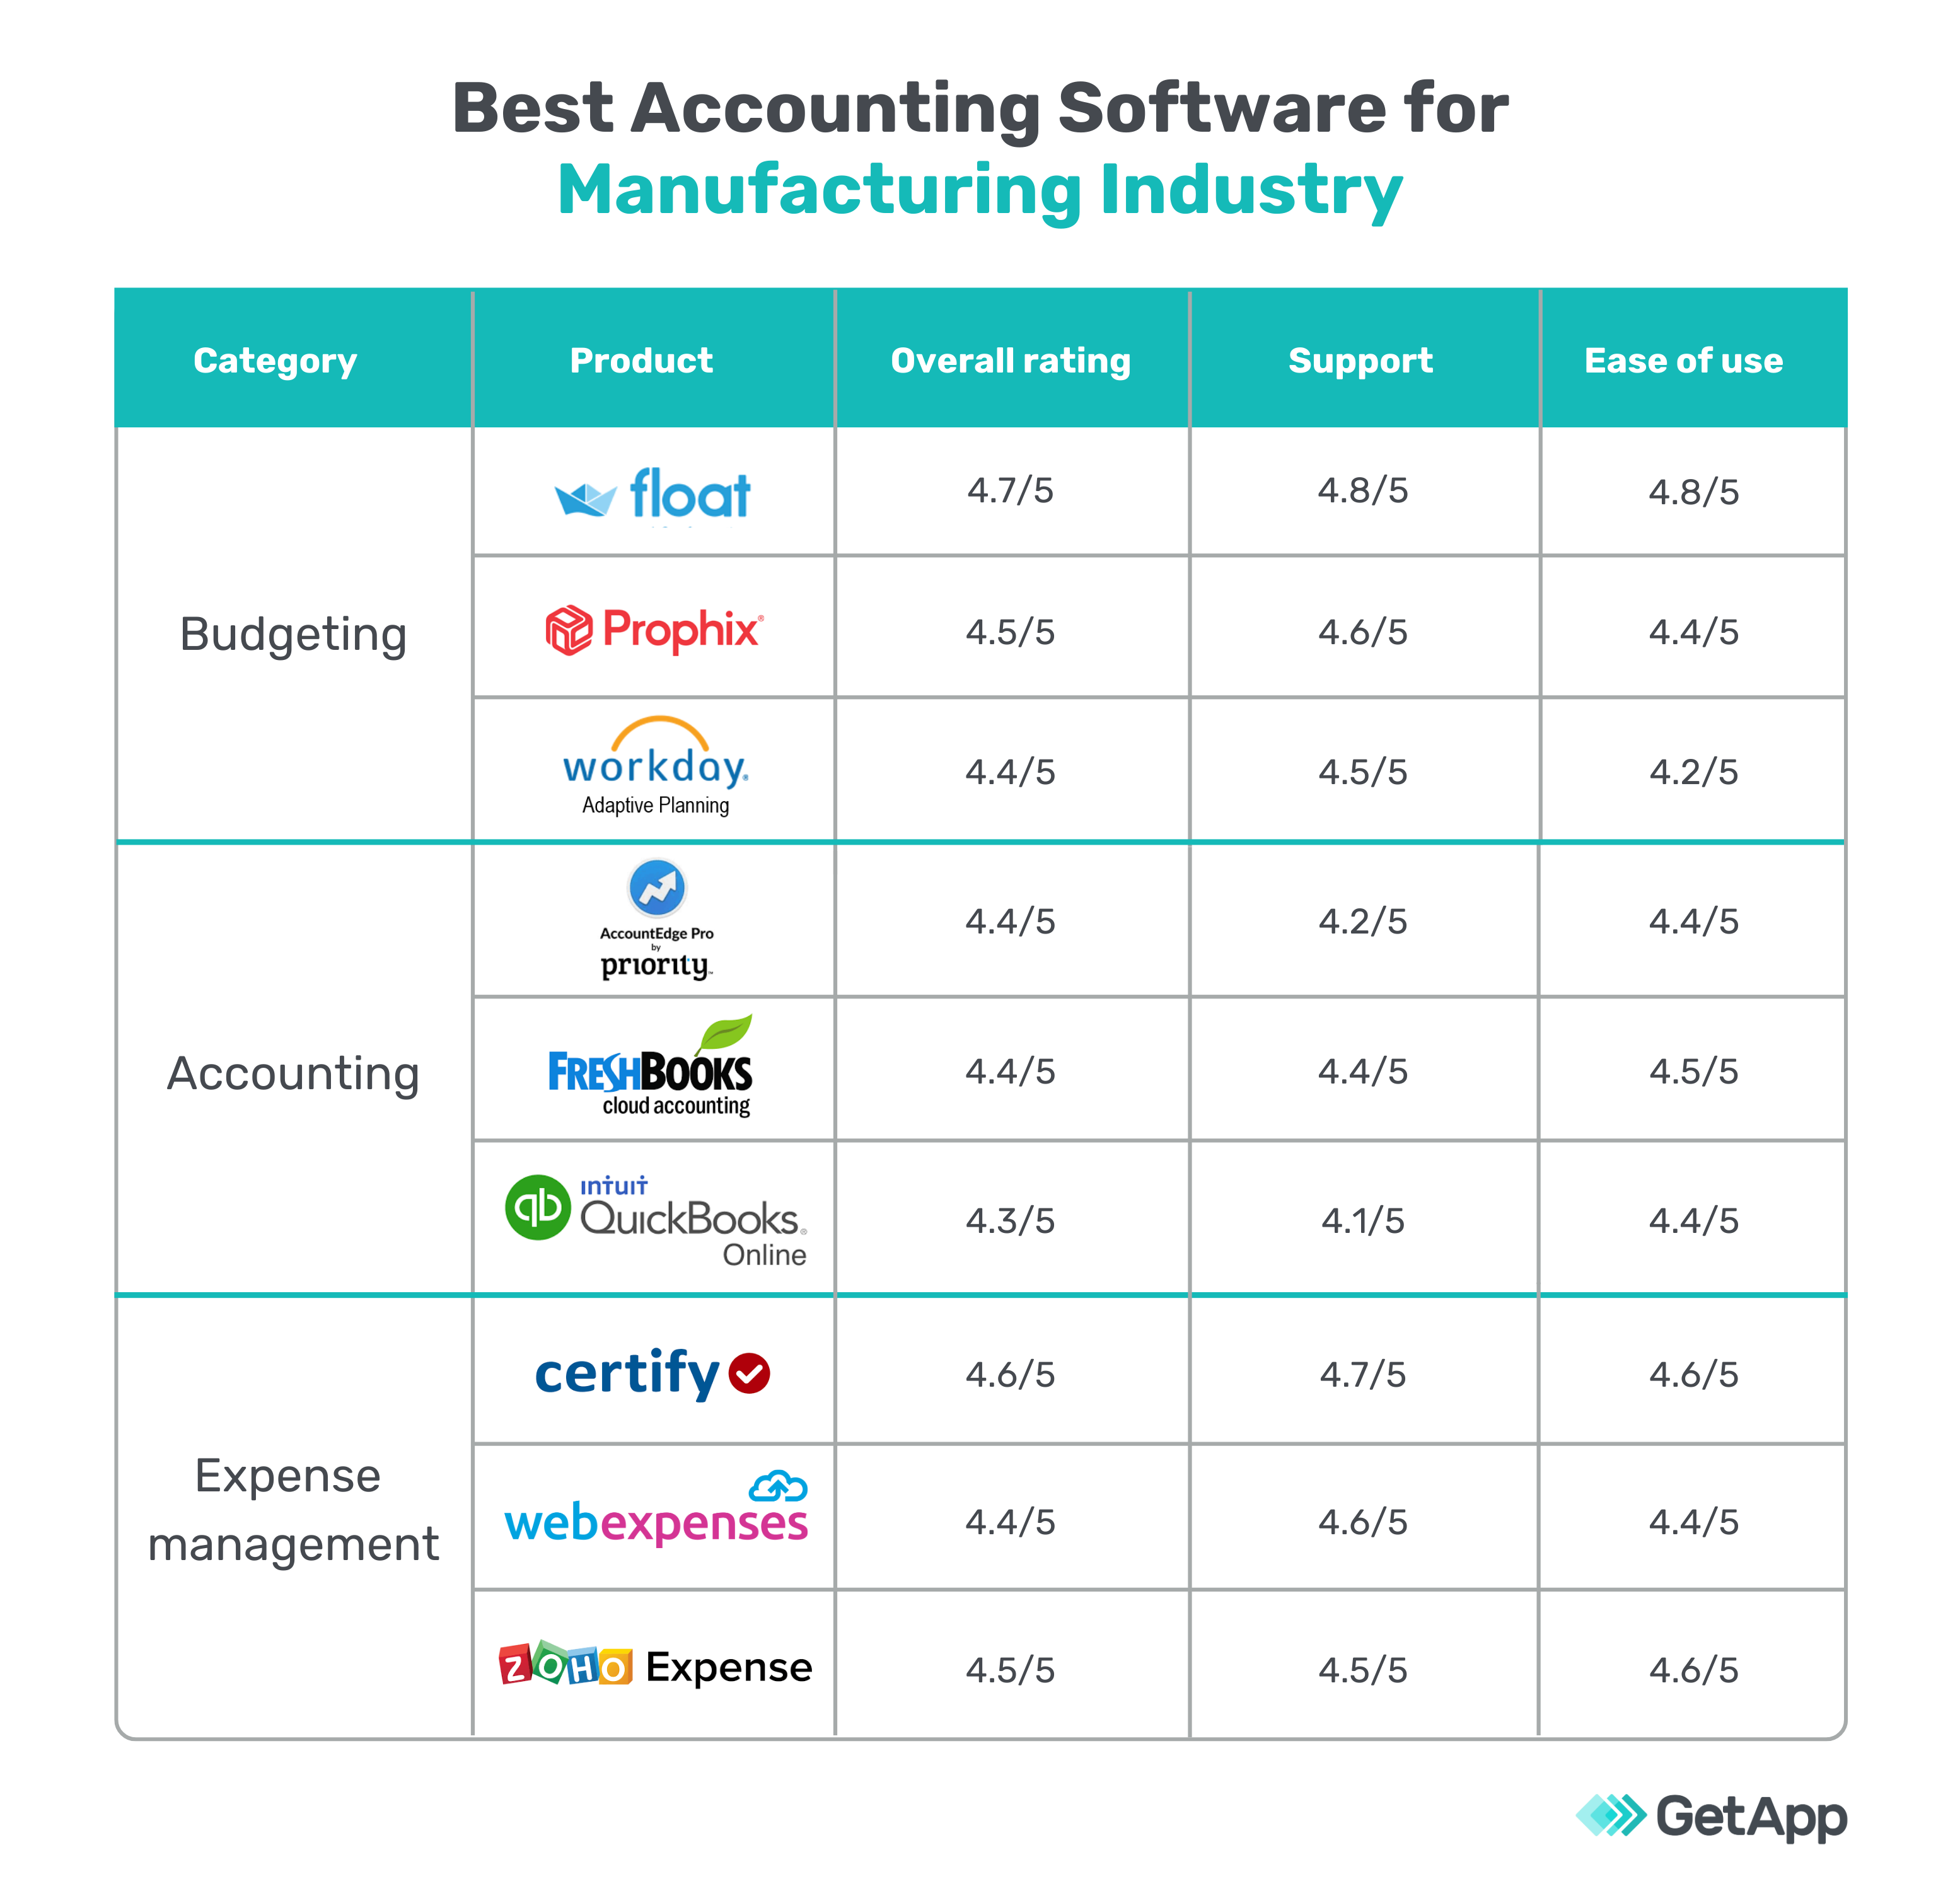 Best accounting software for manufacturing industry